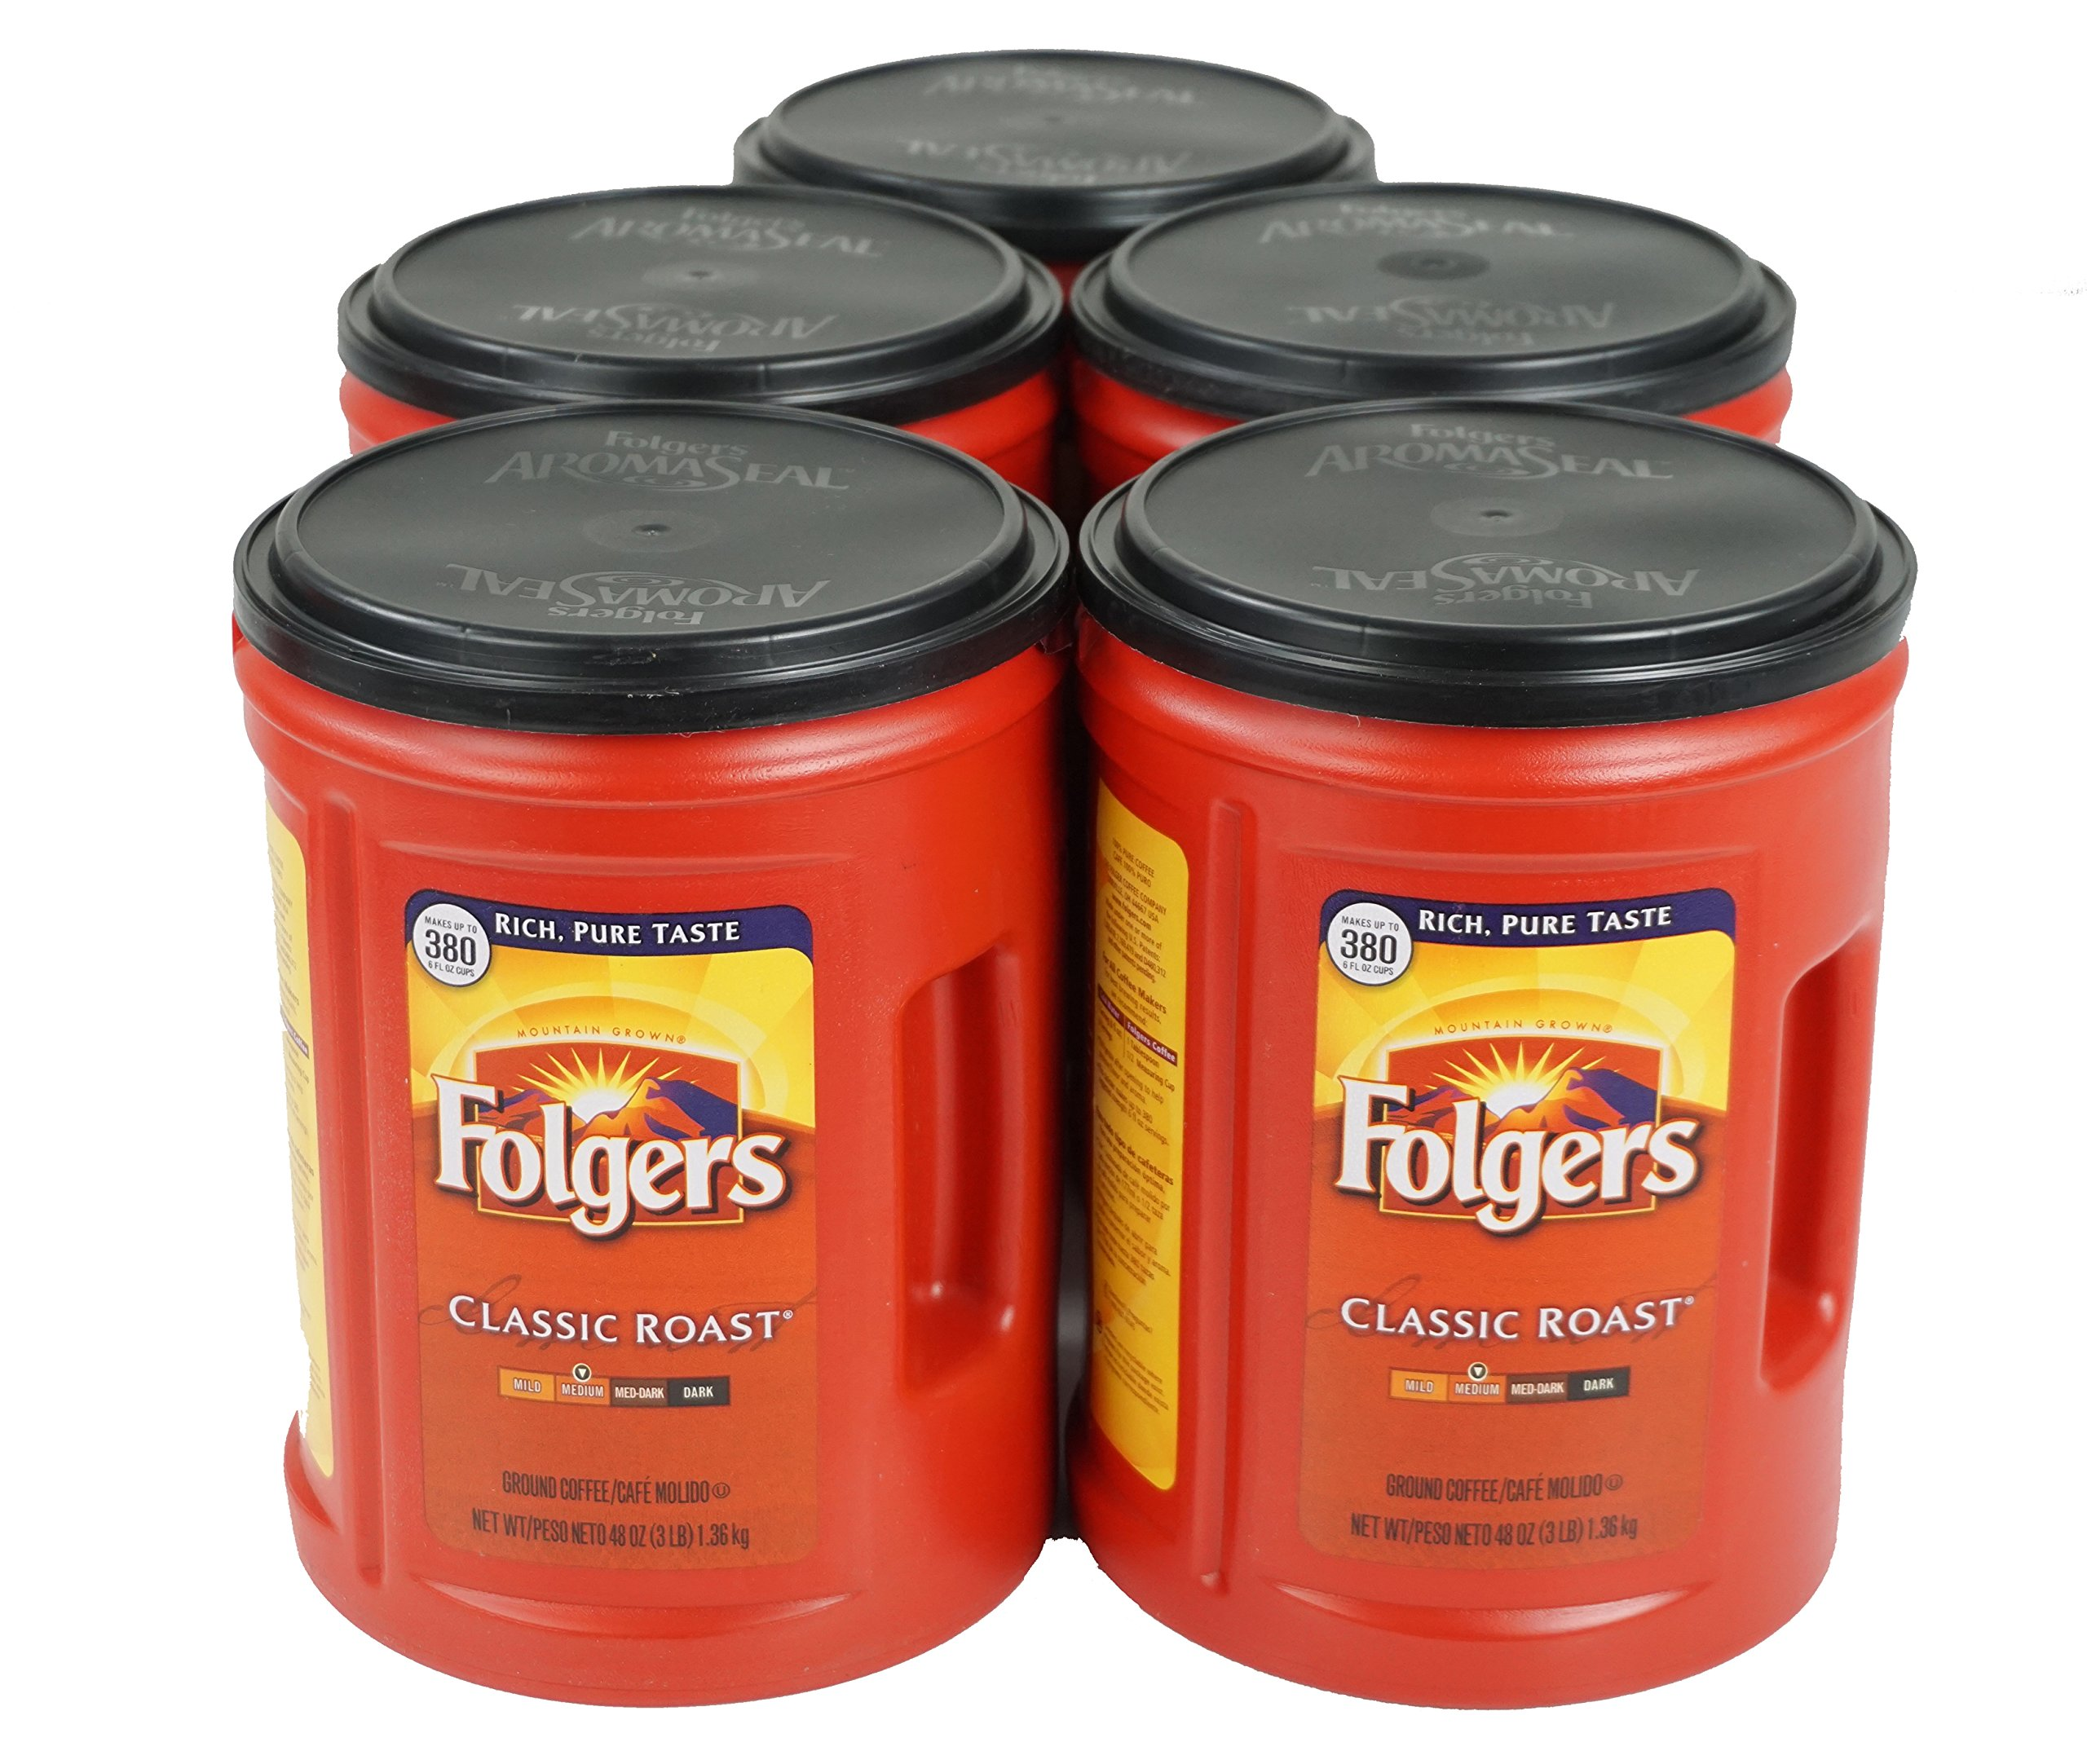 Folgers Classic Medium Roast Coffee, 5-Pack of 48 Ounce Cans